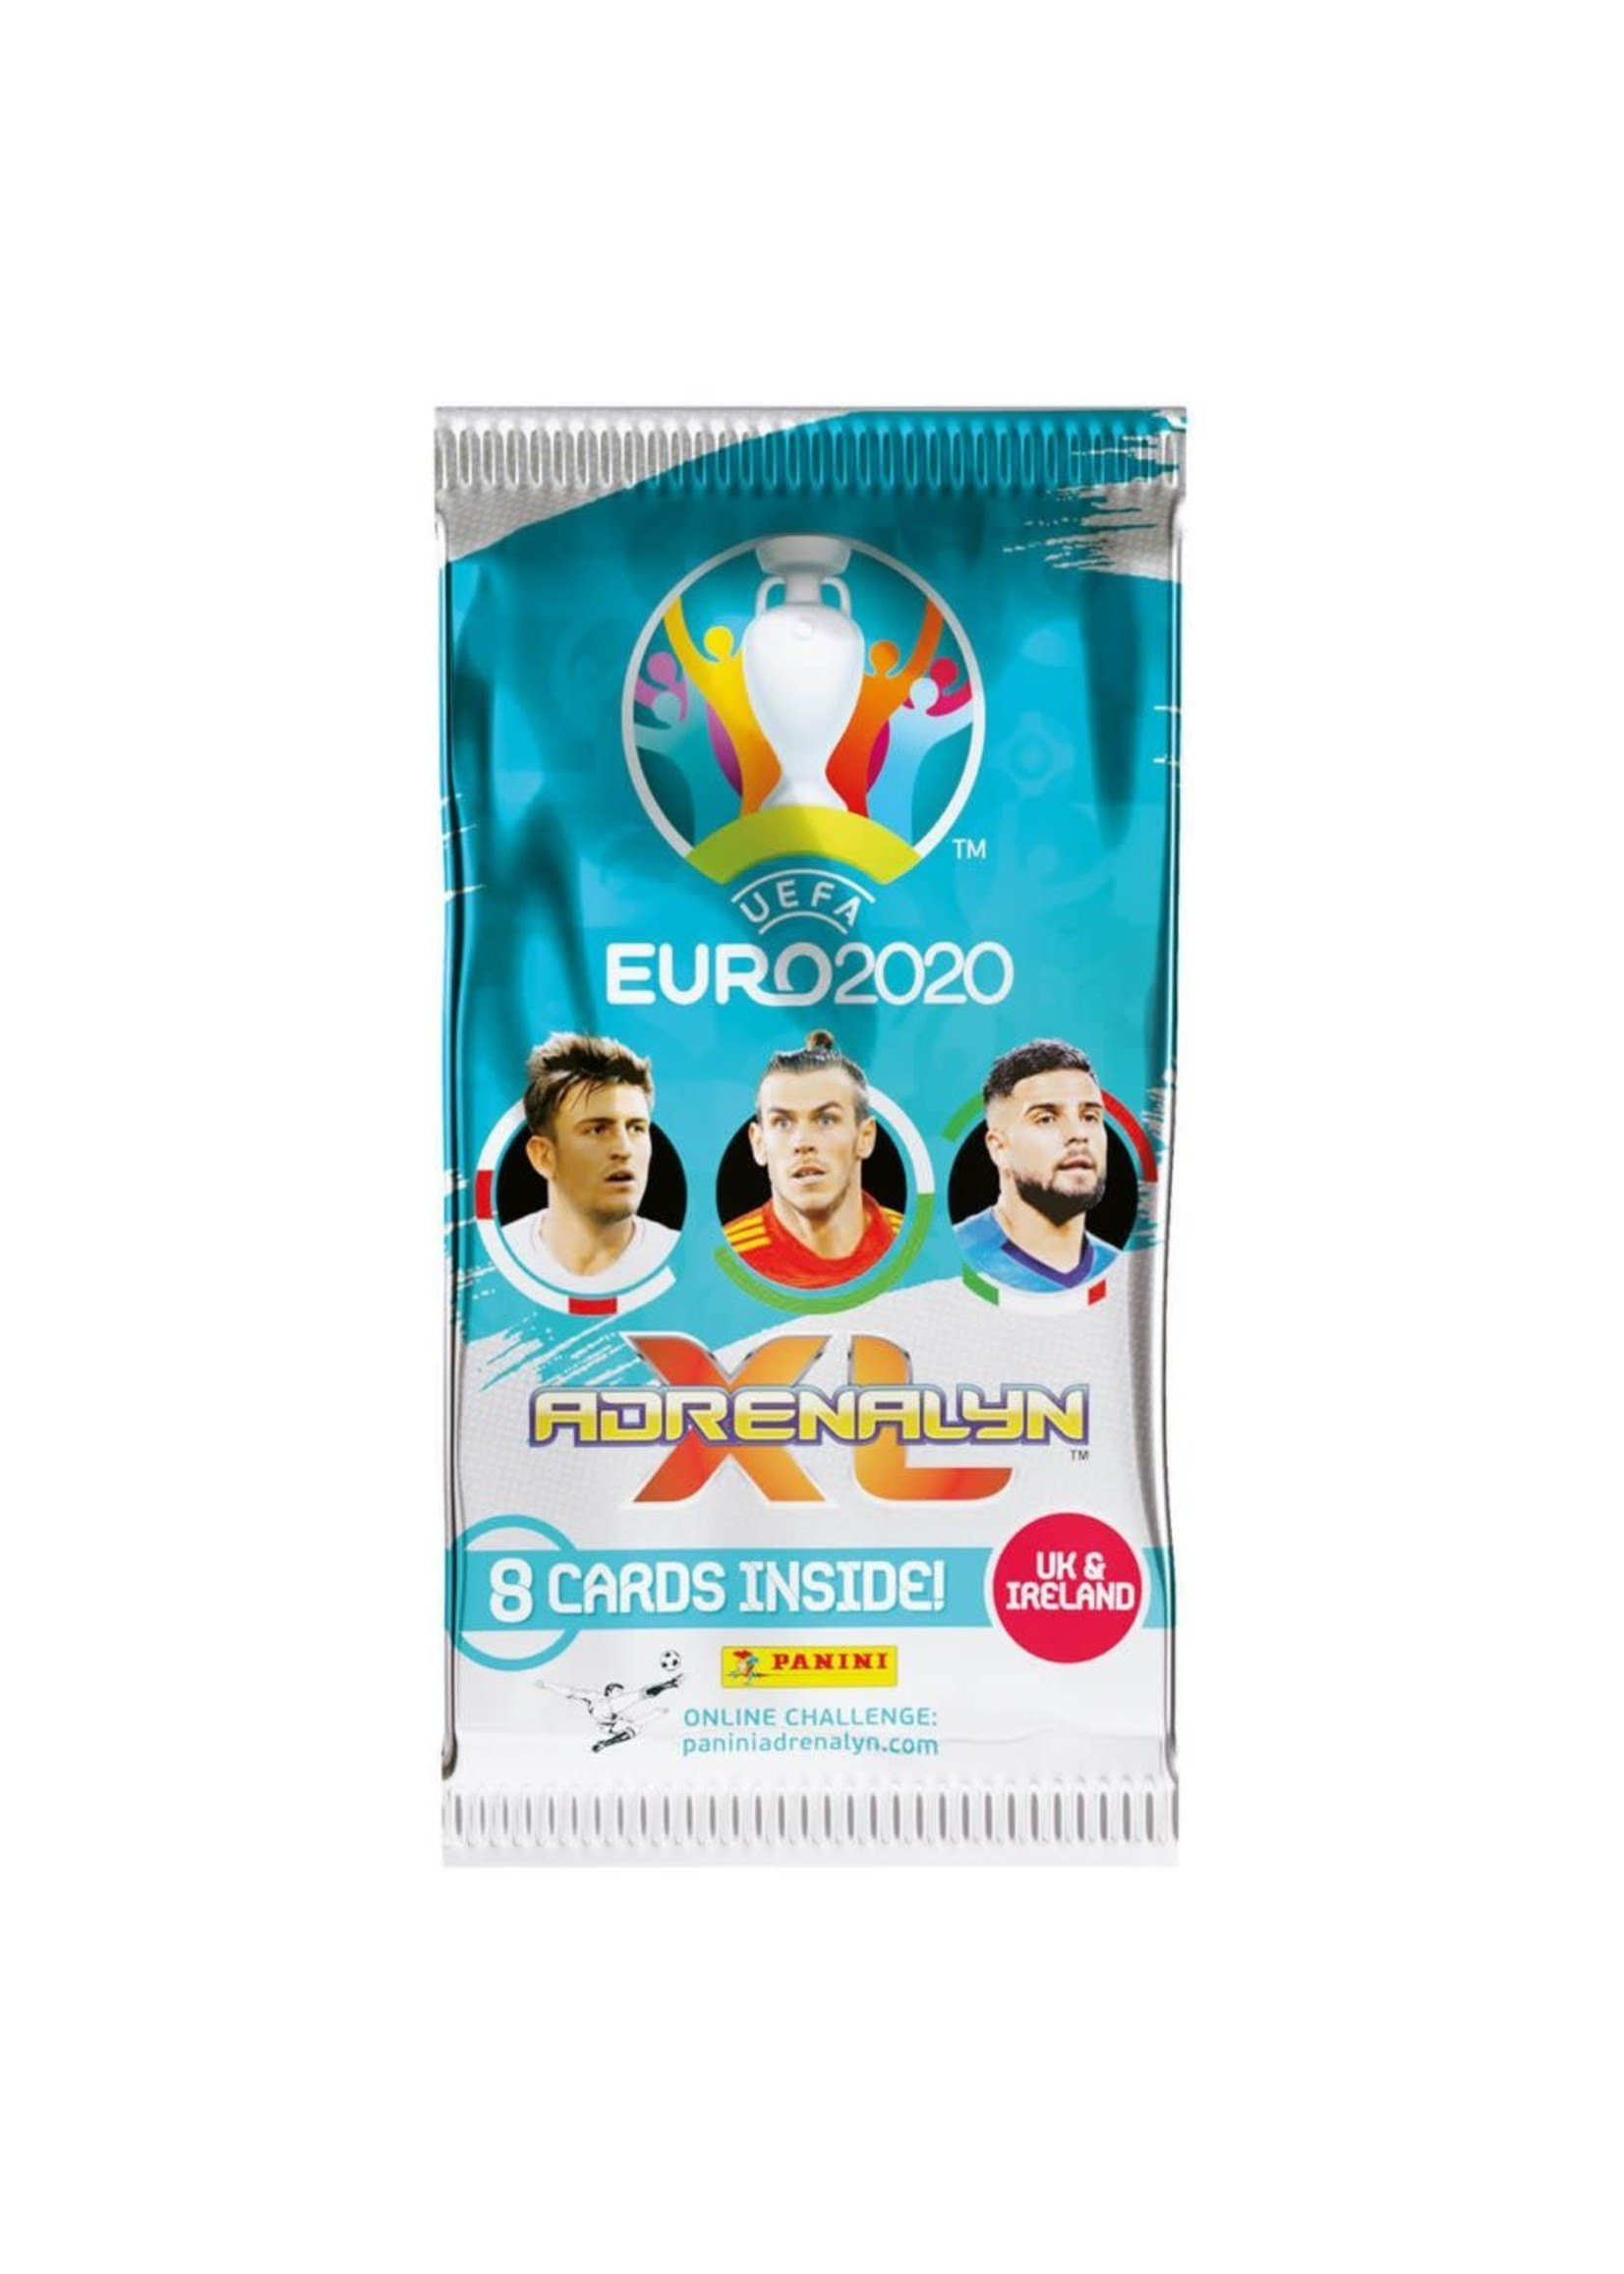 EURO CUP 2020 TRADING CARDS